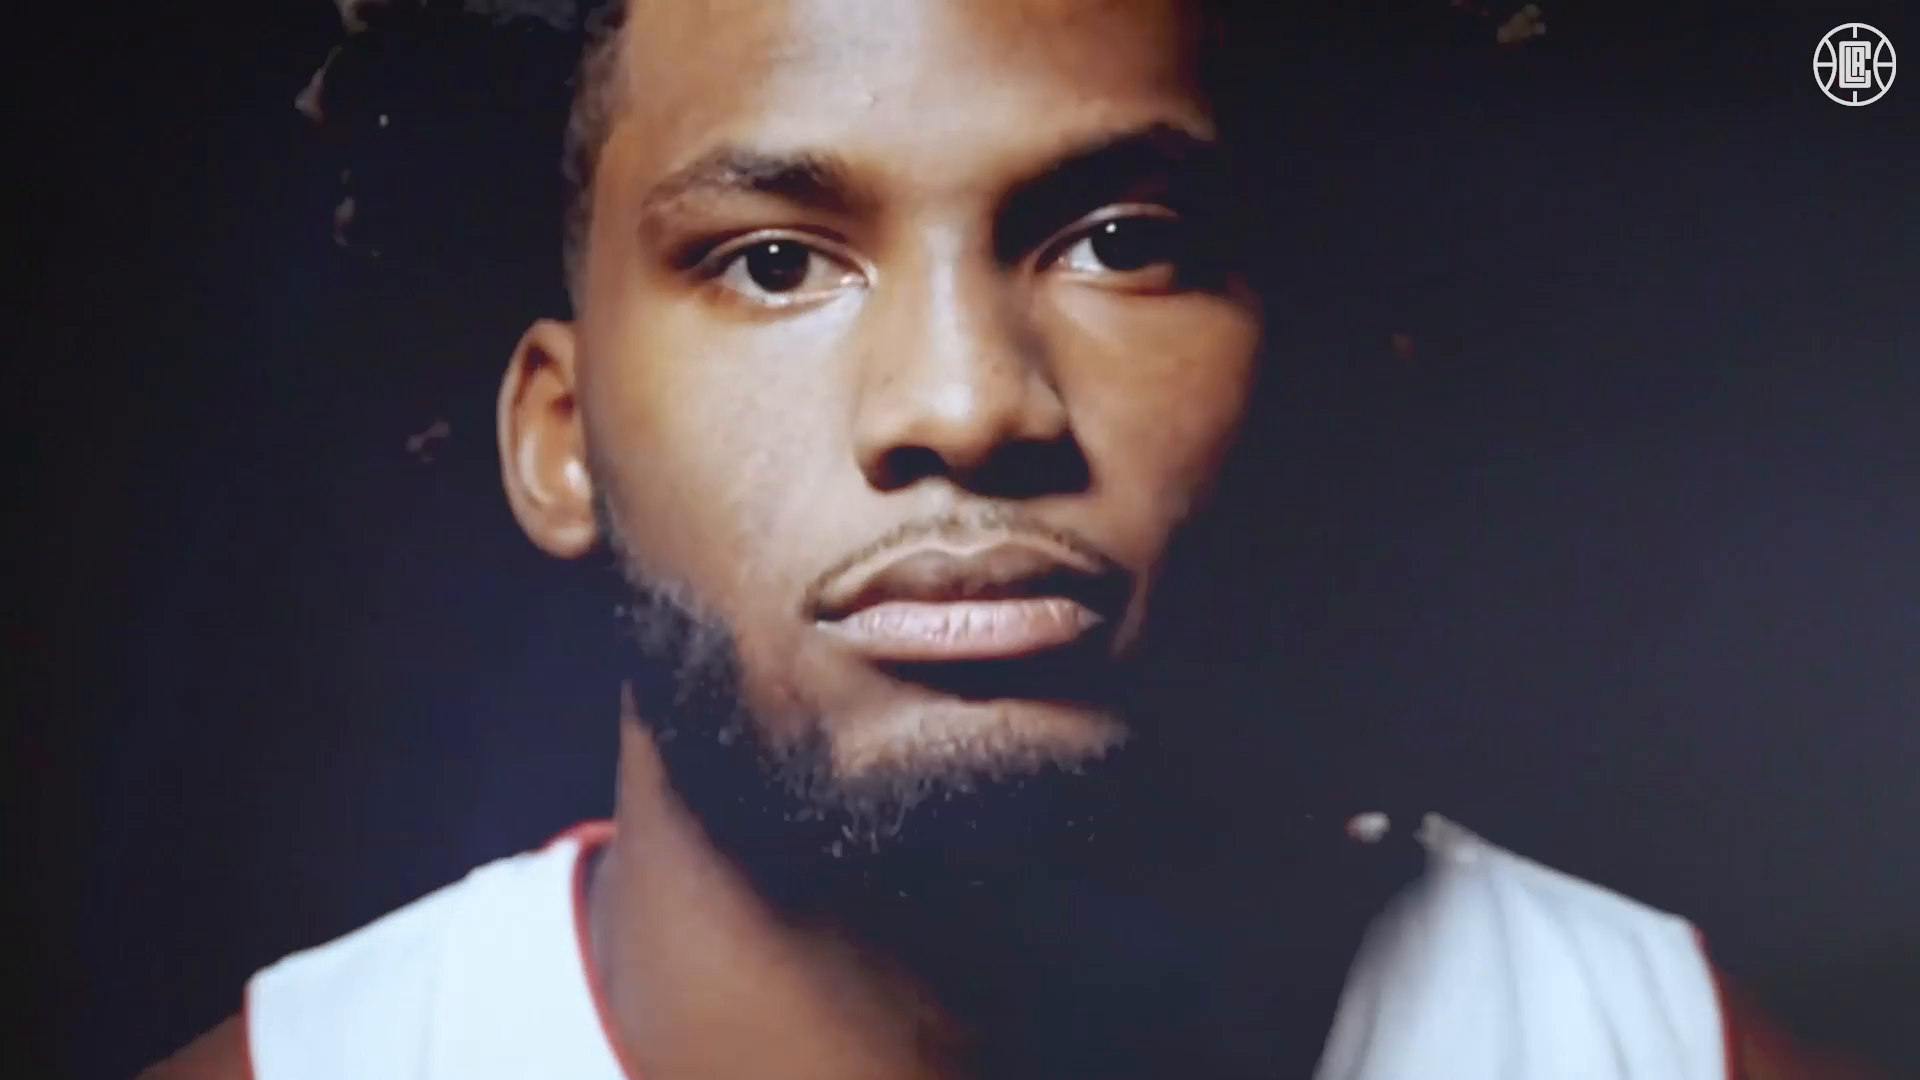 Welcome to LA, Justise Winslow